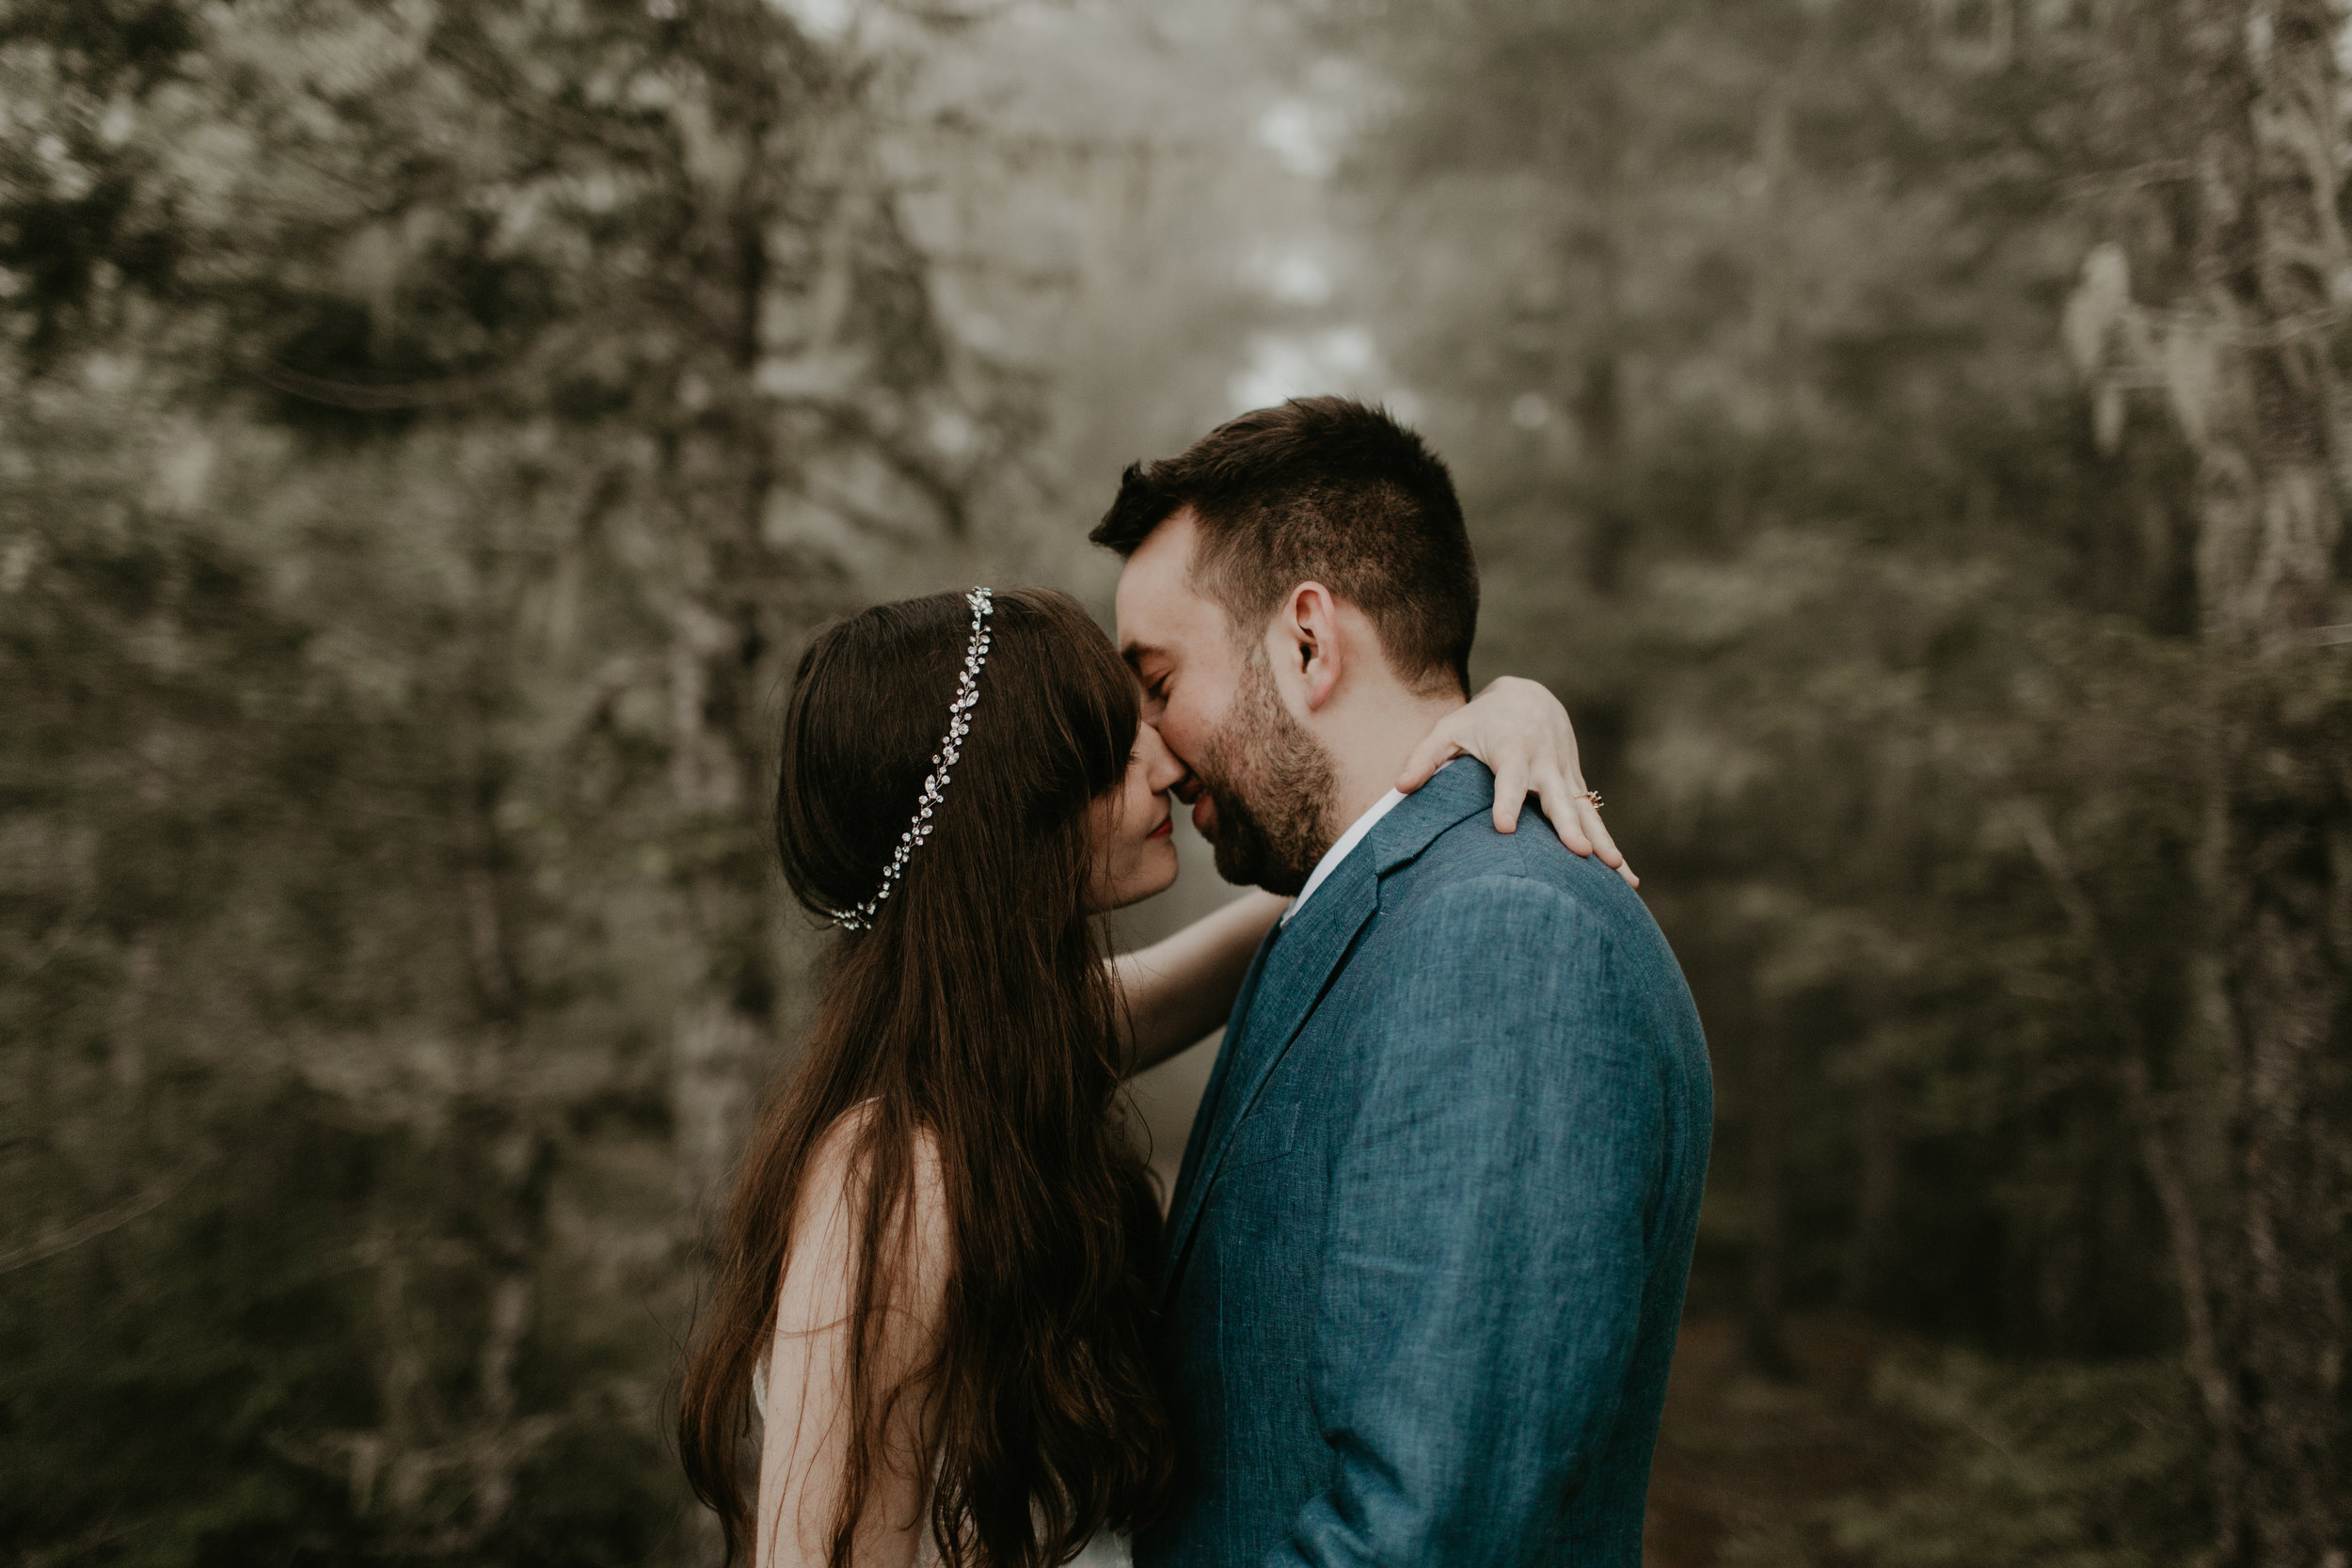 PNW-elopement-wedding-engagement-olympic national park-port angeles-hurricane ridge-lake crescent-kayla dawn photography- photographer-photography-kayladawnphoto-158.jpg